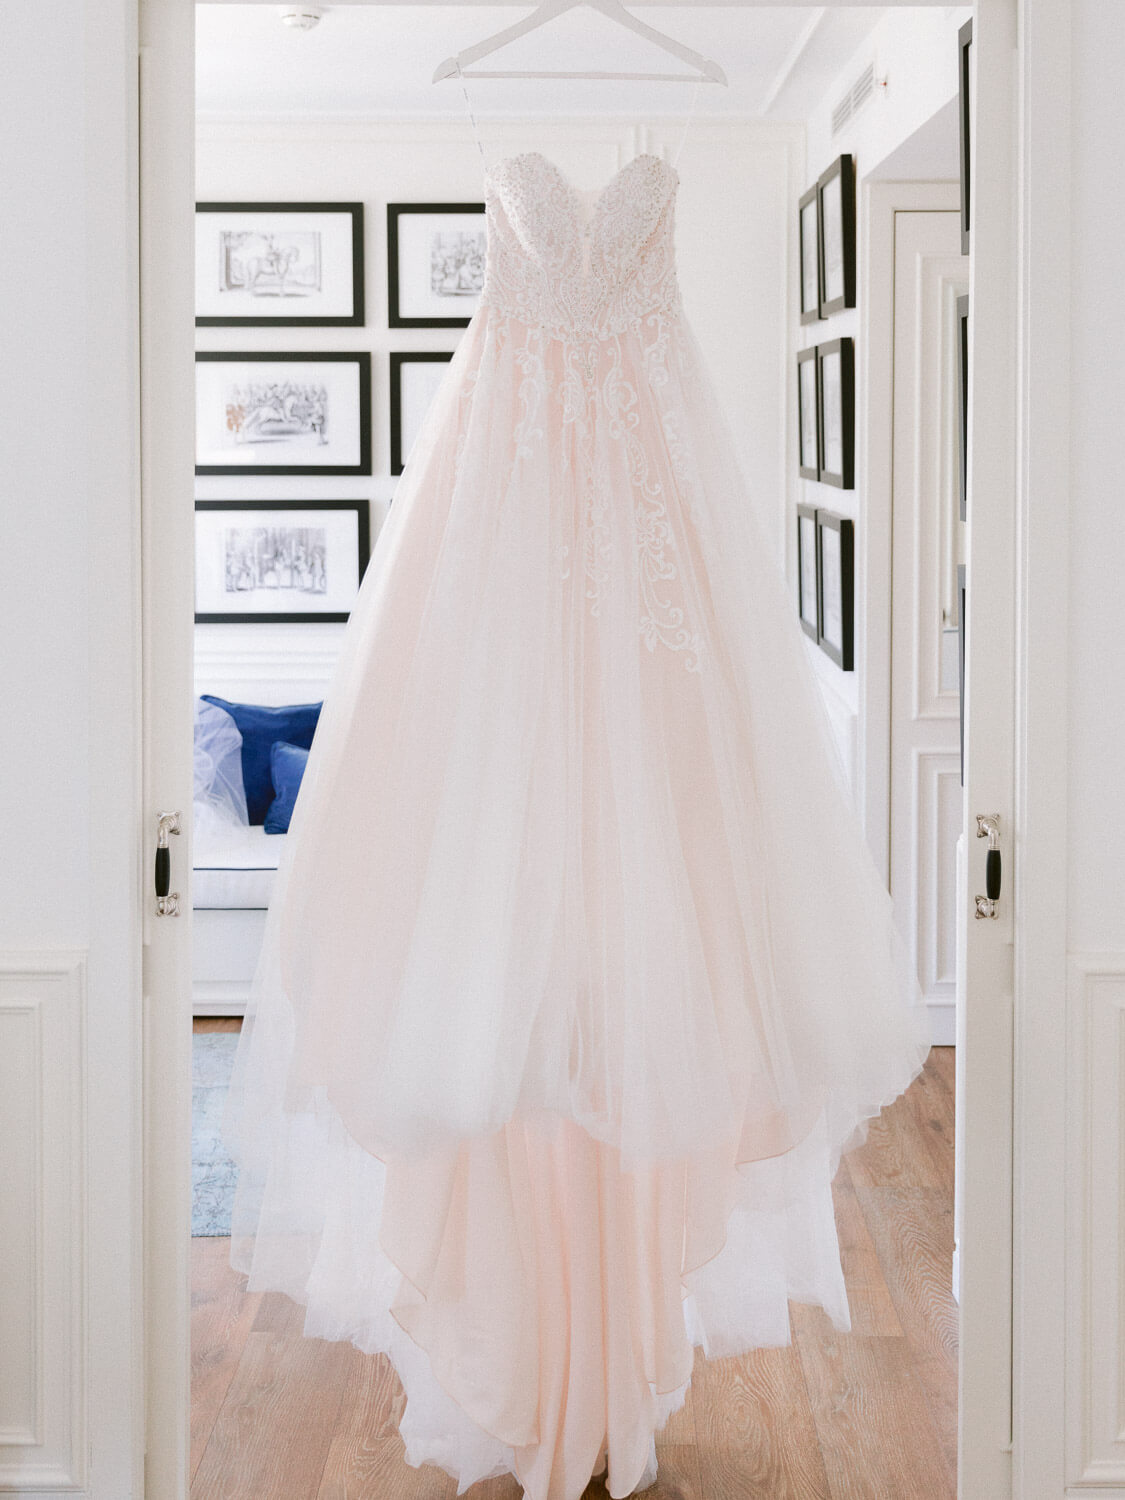 bridal gown with peach hues hanging on door